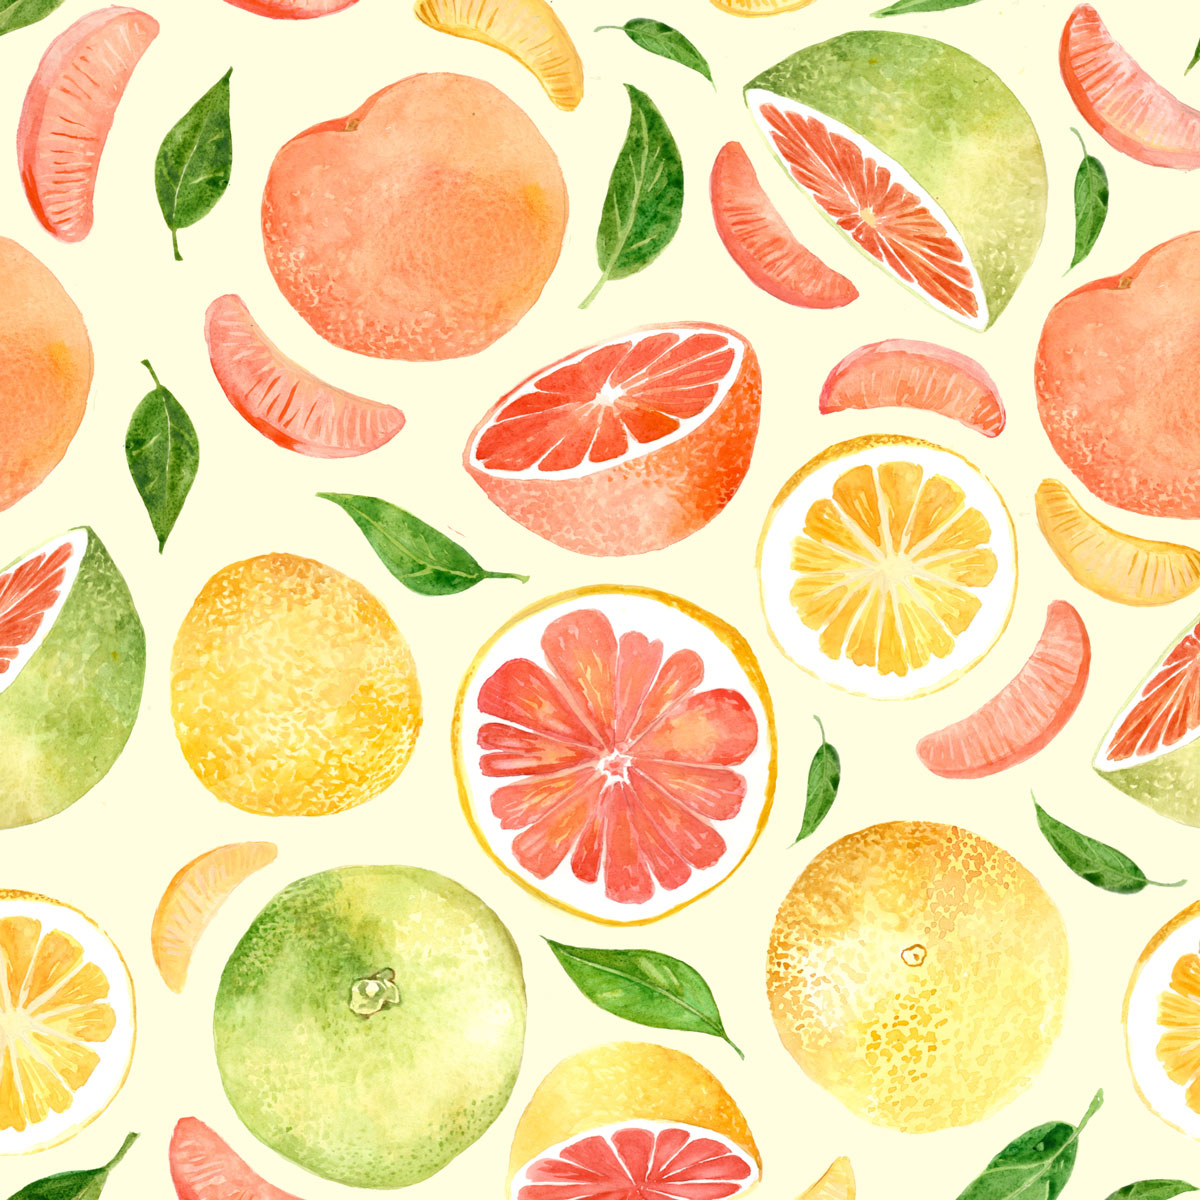 Grapefruit Watercolor Illustration